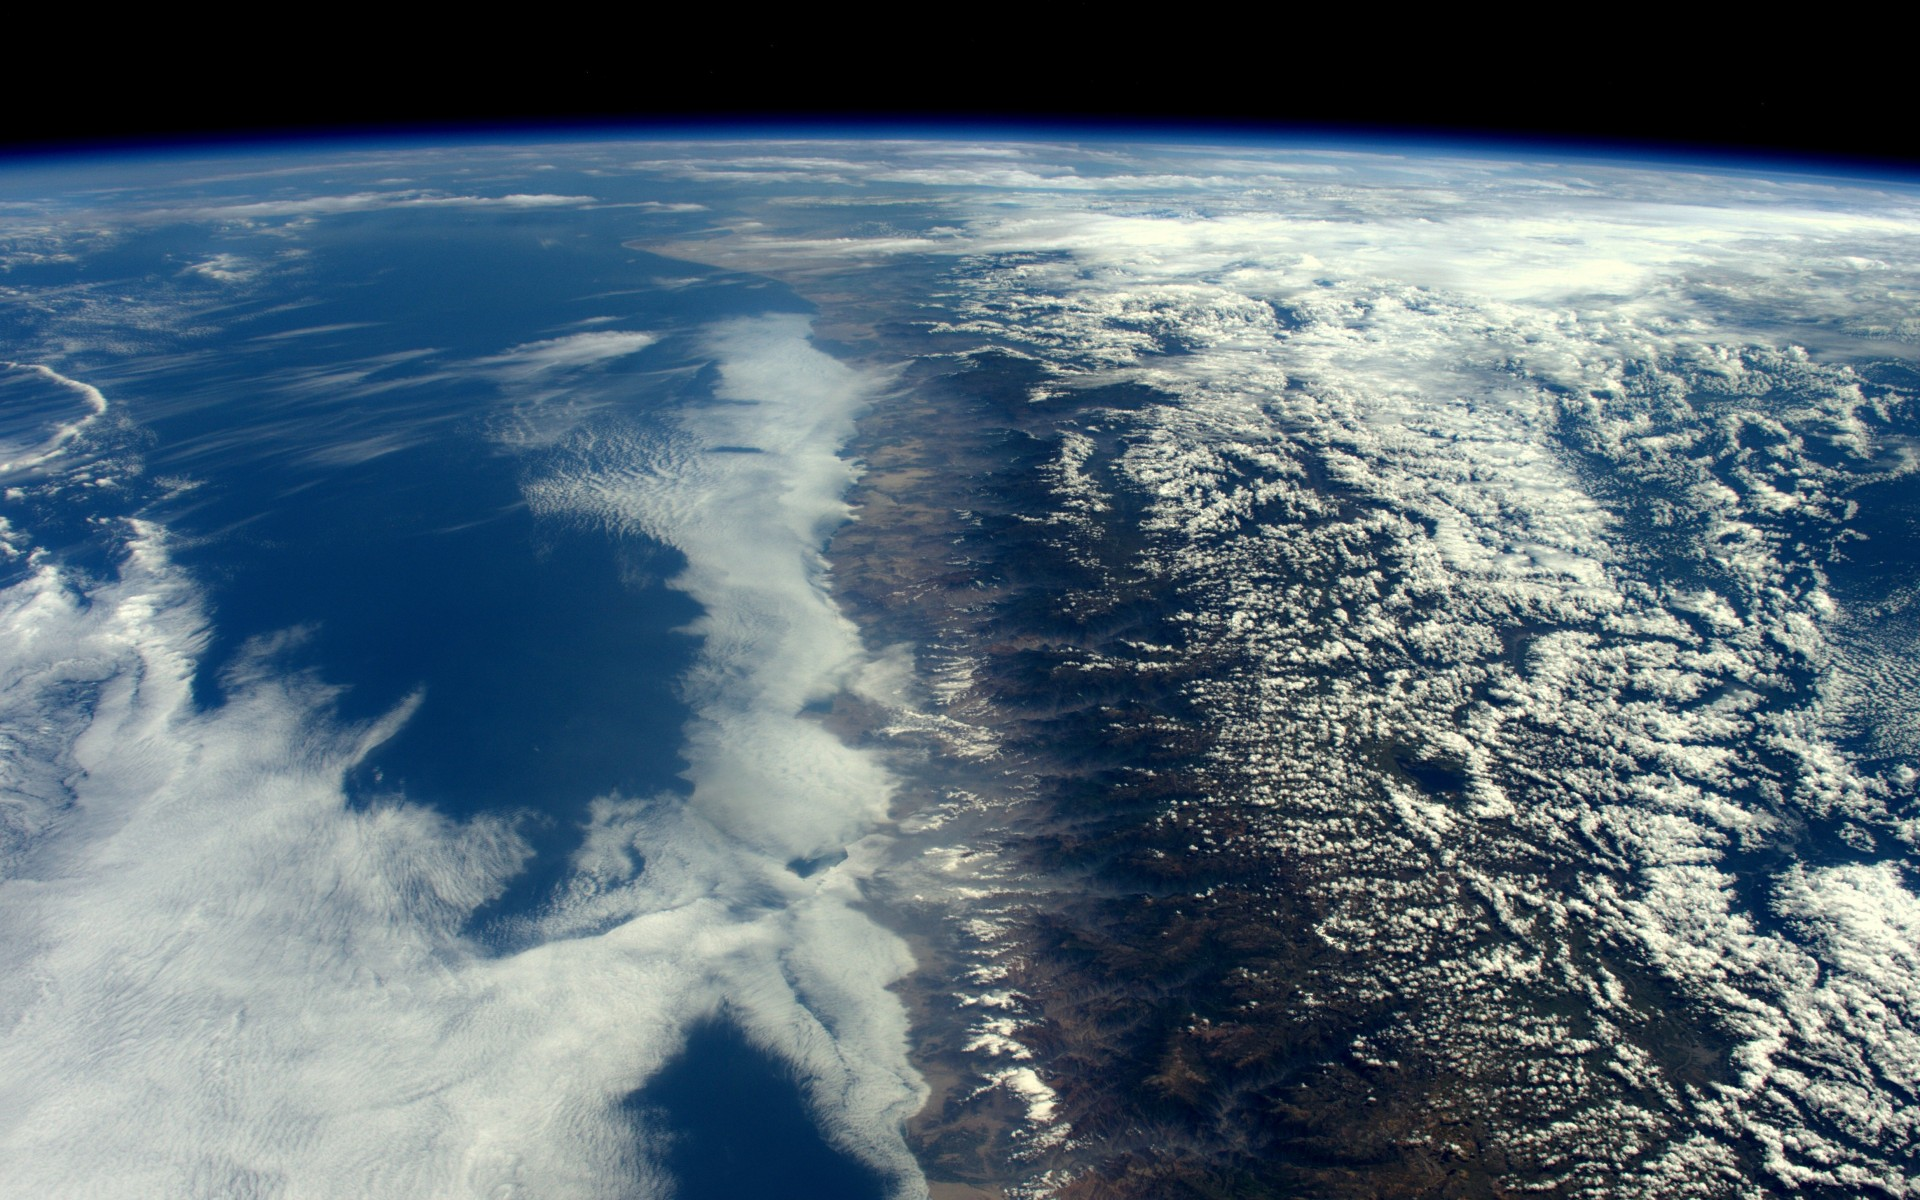 water, clouds, plannet earth, space